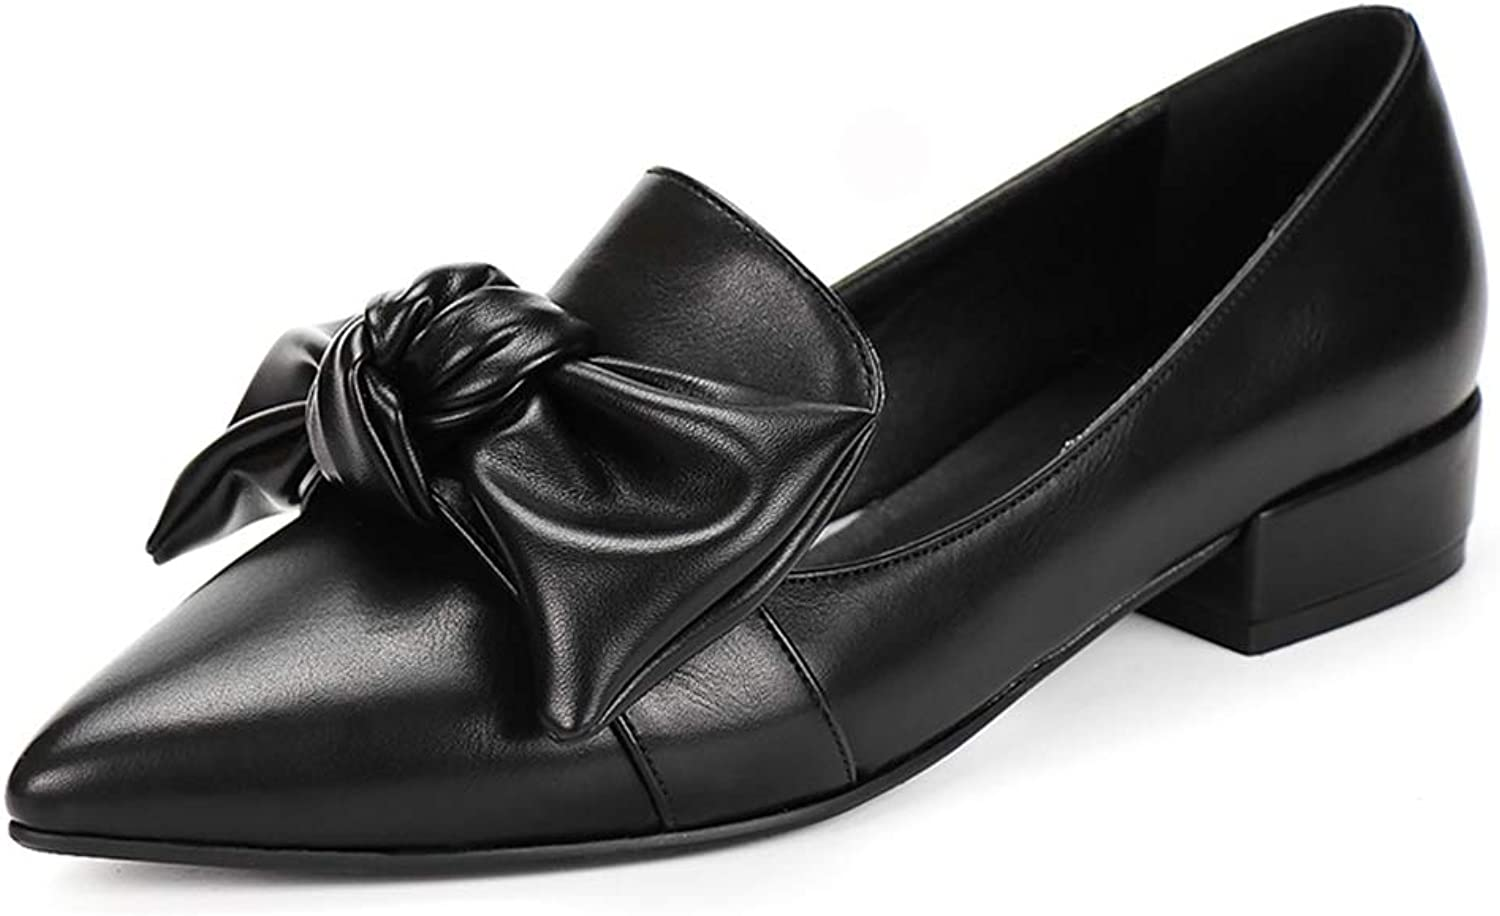 SaraIris Women's Faux Leather Comfortable Flat Heel Cute Bowknot Slip on Loafer shoes